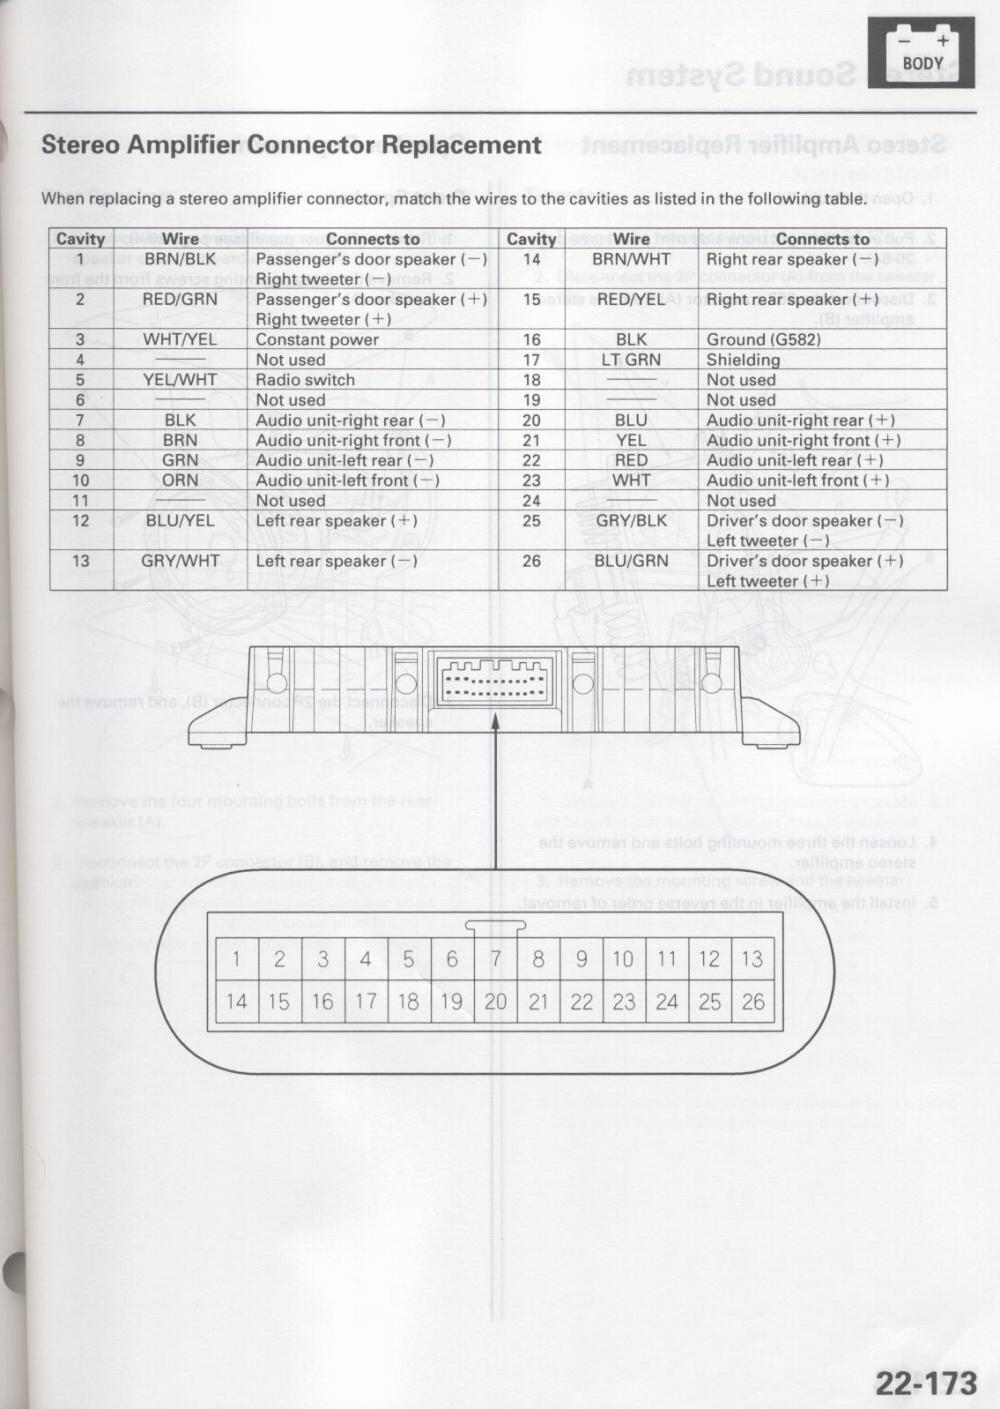 Car Radio Stereo Audio Wiring Diagram Autoradio Connector Wire 96 Acura 2 5 Engine Installation Schematic Schema Esquema De Conexiones Anschlusskammern Konektor